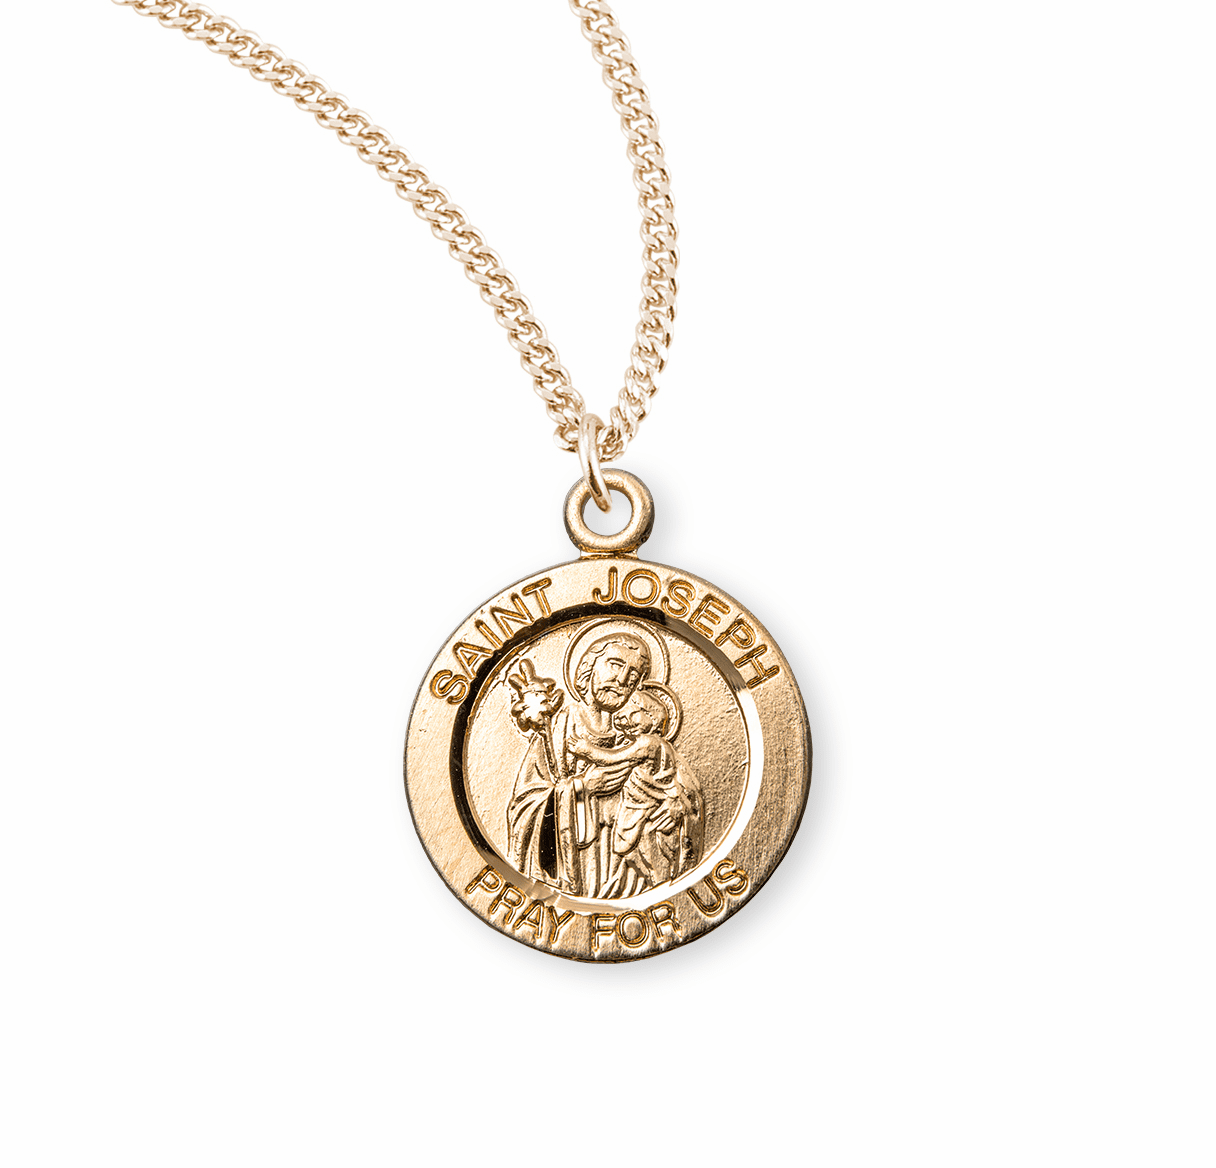 HMH Religious St Joseph holding Baby Jesus Round Gold/Sterling Pendant Necklace